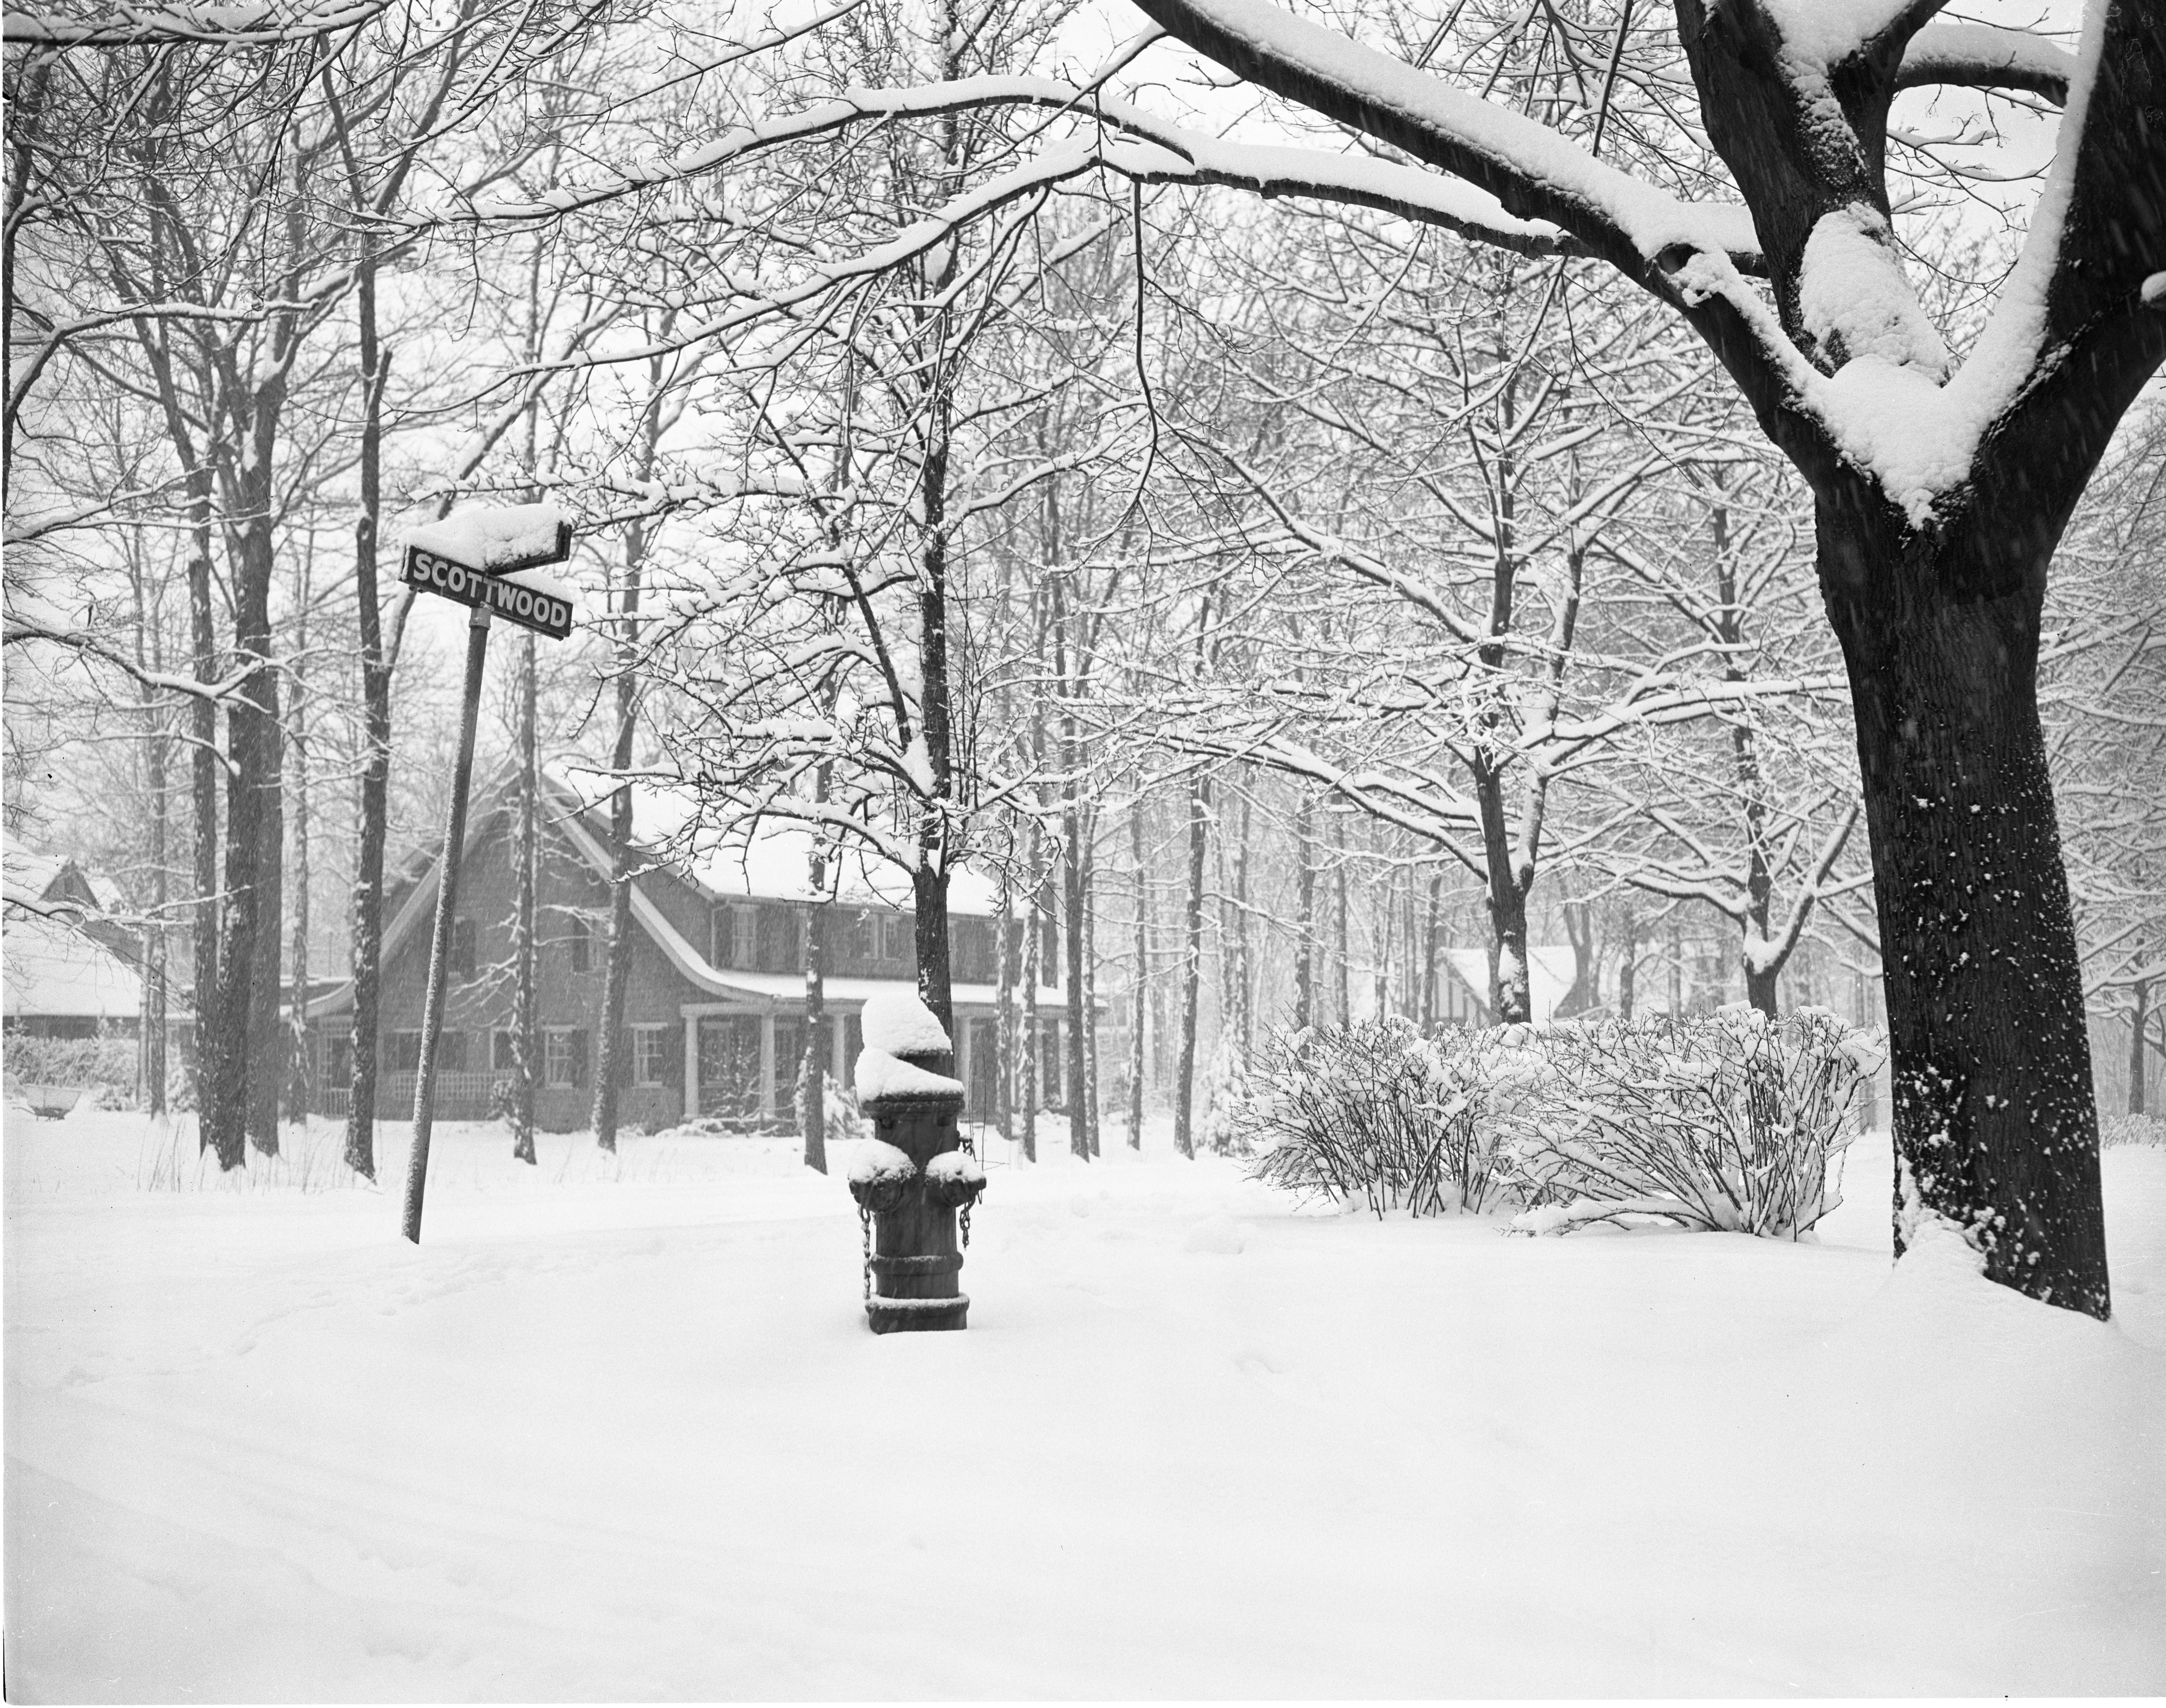 Snow Covers The Intersection Of Scottwood Avenue & Norway Road, March 1956 image